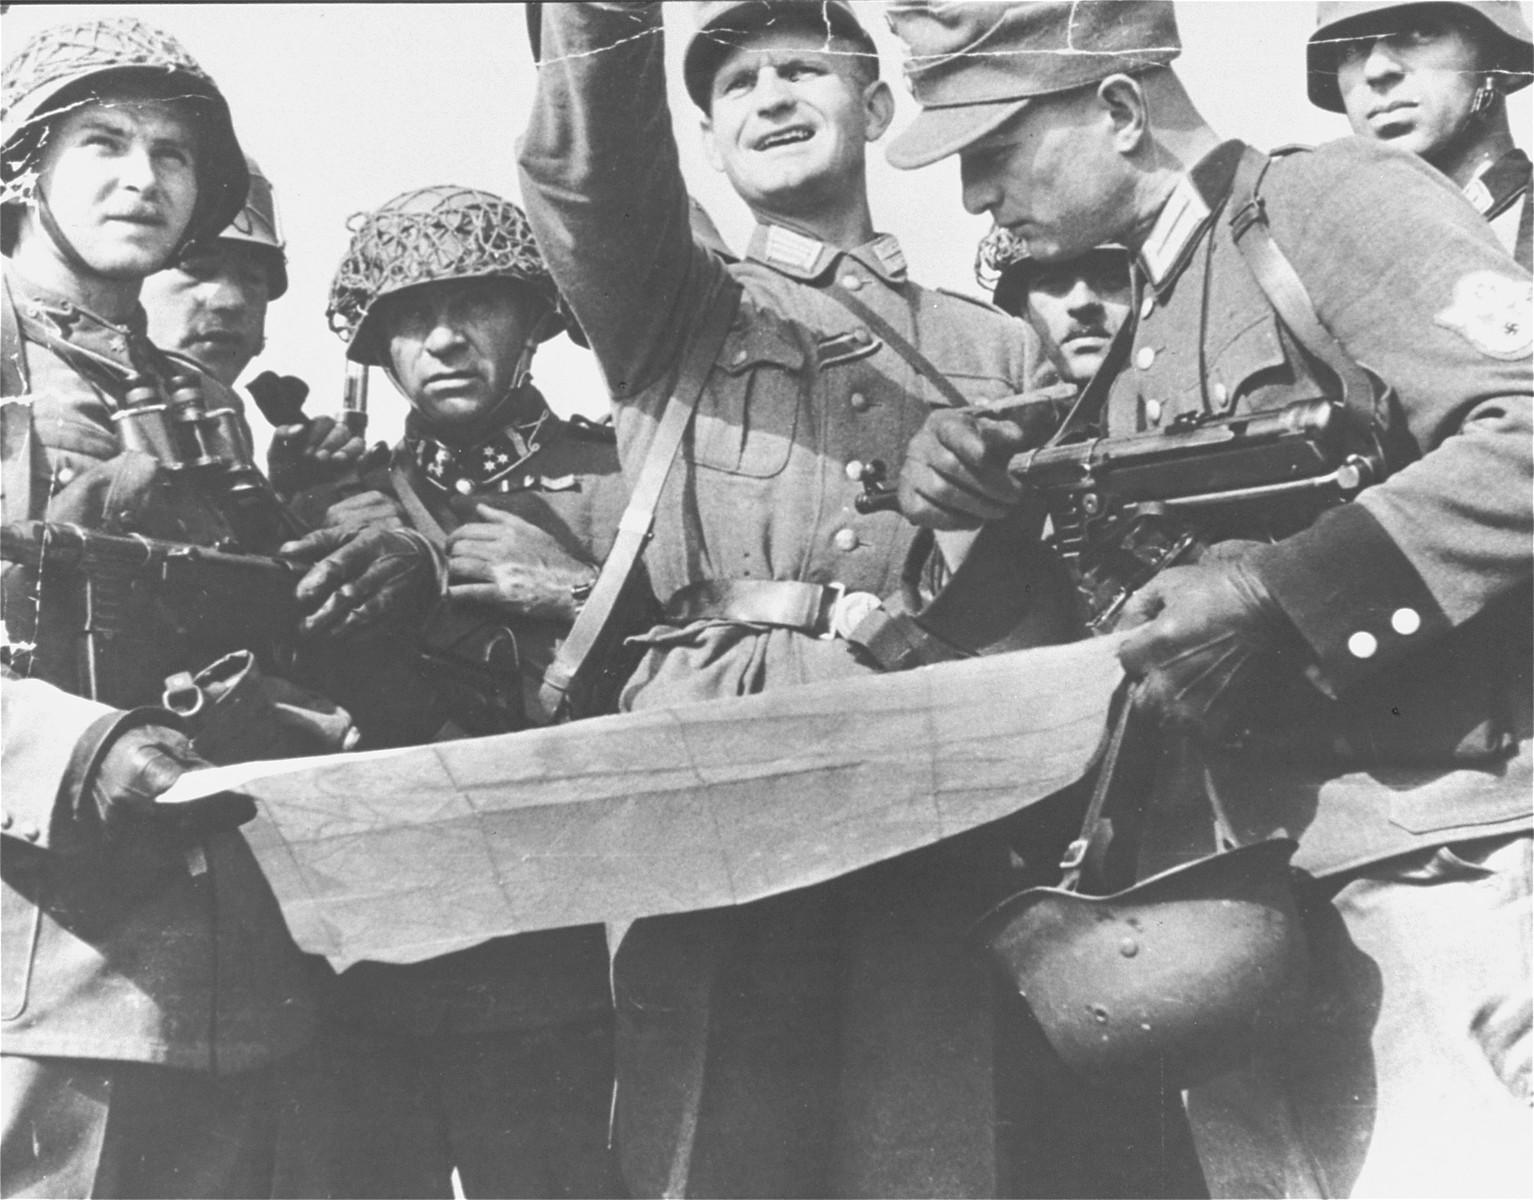 German and Hungarian soldiers consult a map during a military operation.    The man on the right is a German police officer.